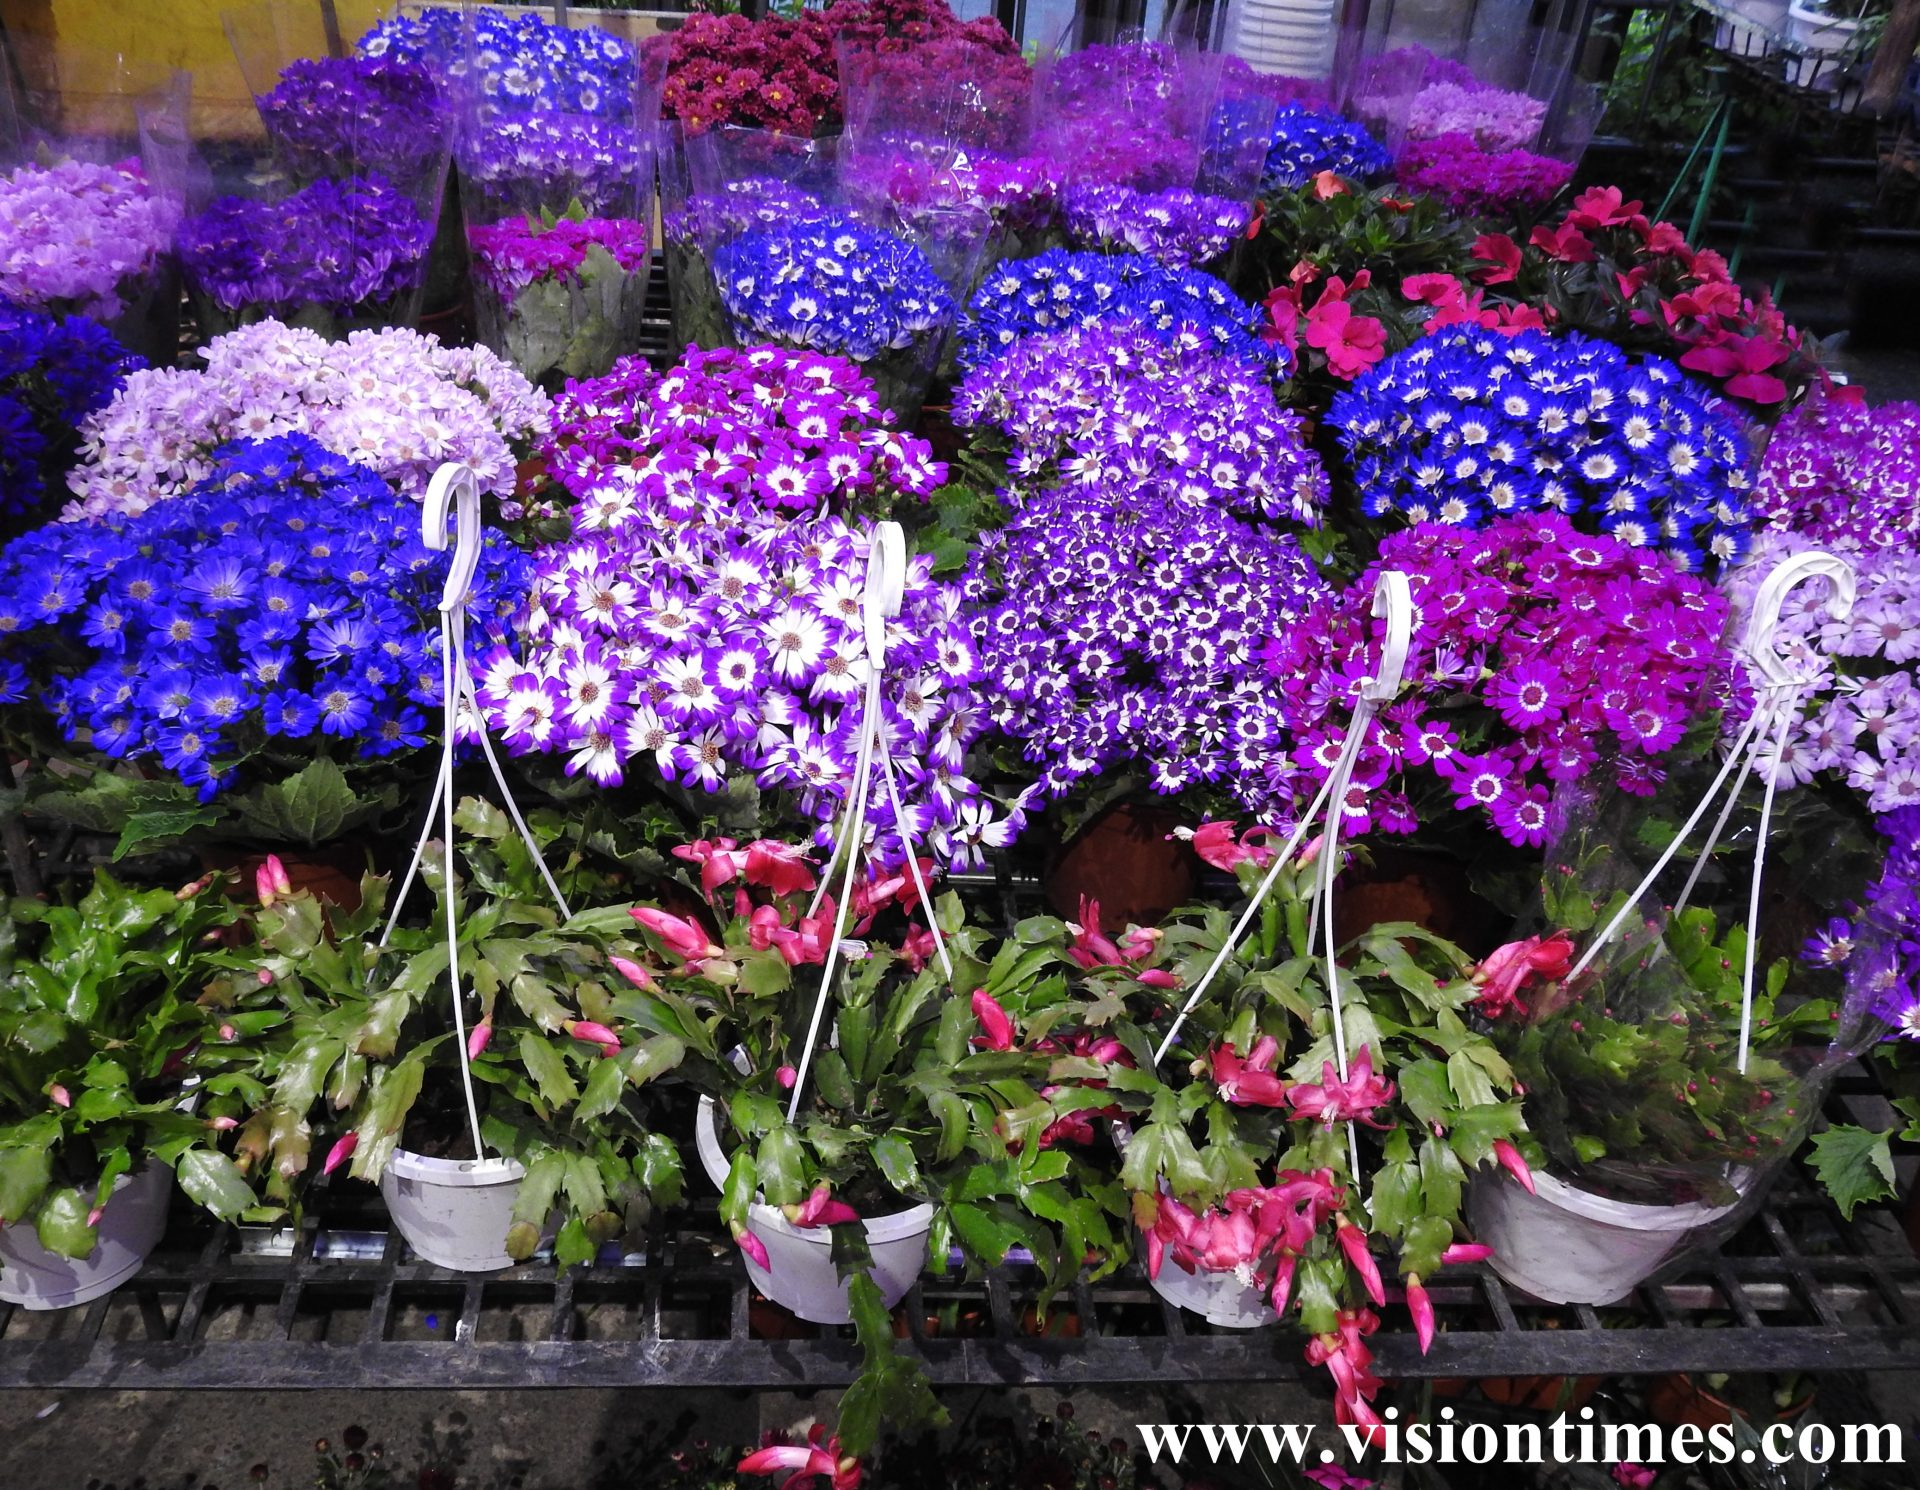 Jianguo Holiday Flower Market is vibrant with a massive variety of beautiful flowers. (Image: Billy Shyu / Vision Times)